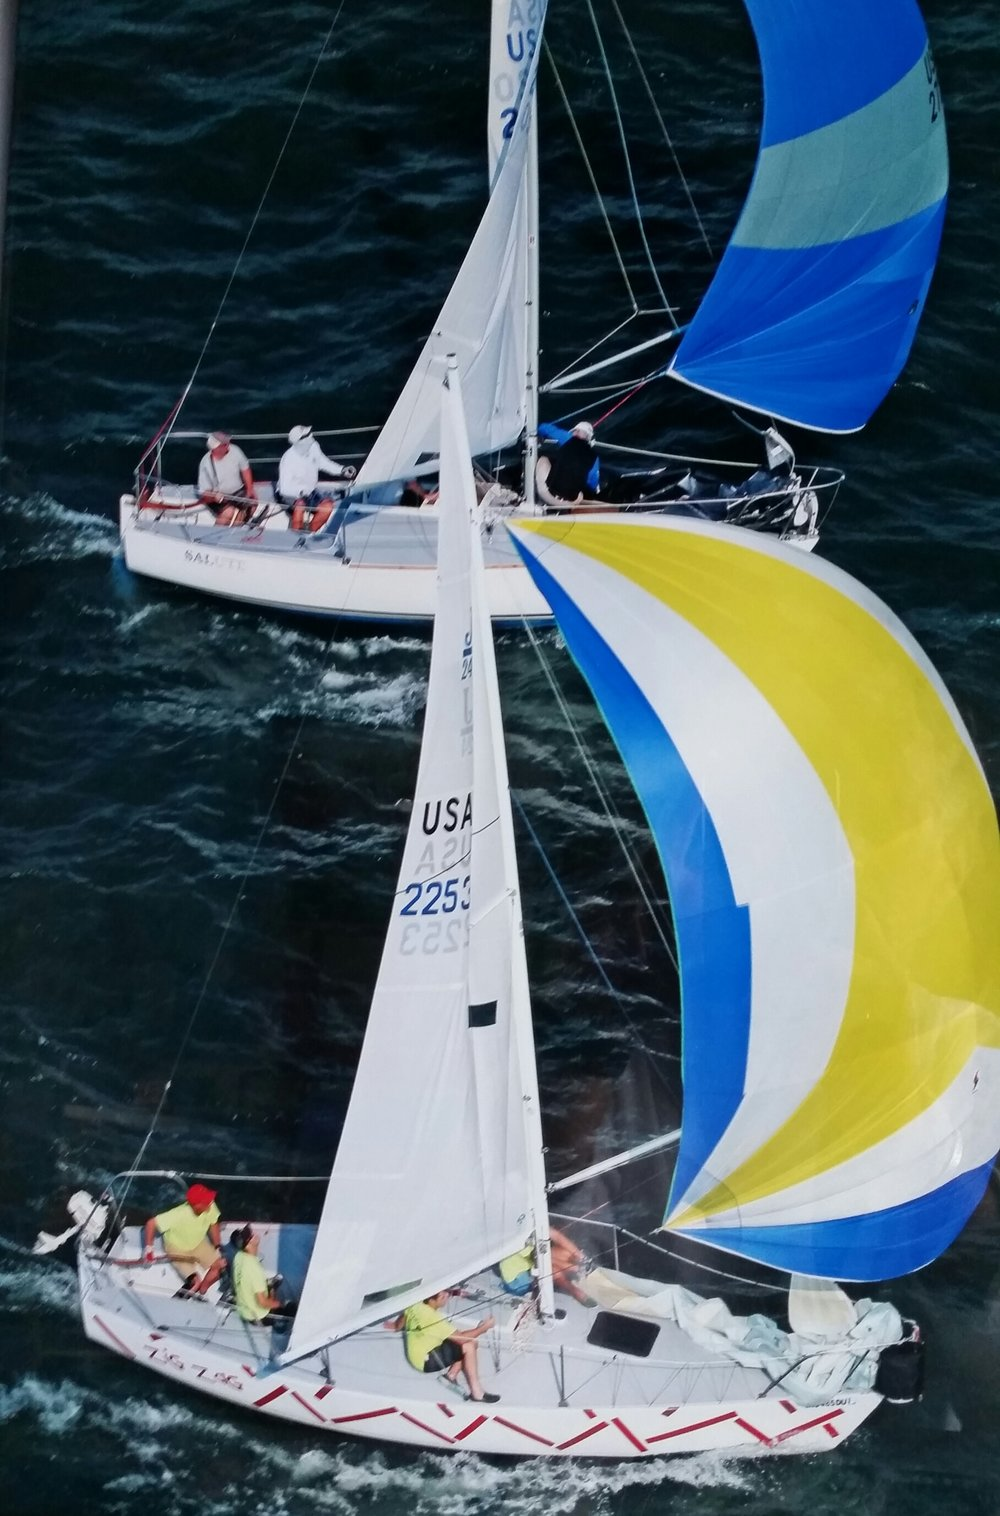 Zig ZAG (ADAM ONDREJACK) and SALUTE (MARCUS ROGERS) sailing DOWNWARD DURING THE 2016 DISTRICT 12 CHAMPIONSHIP AT PUT-IN-BAY YACHT CLUB.